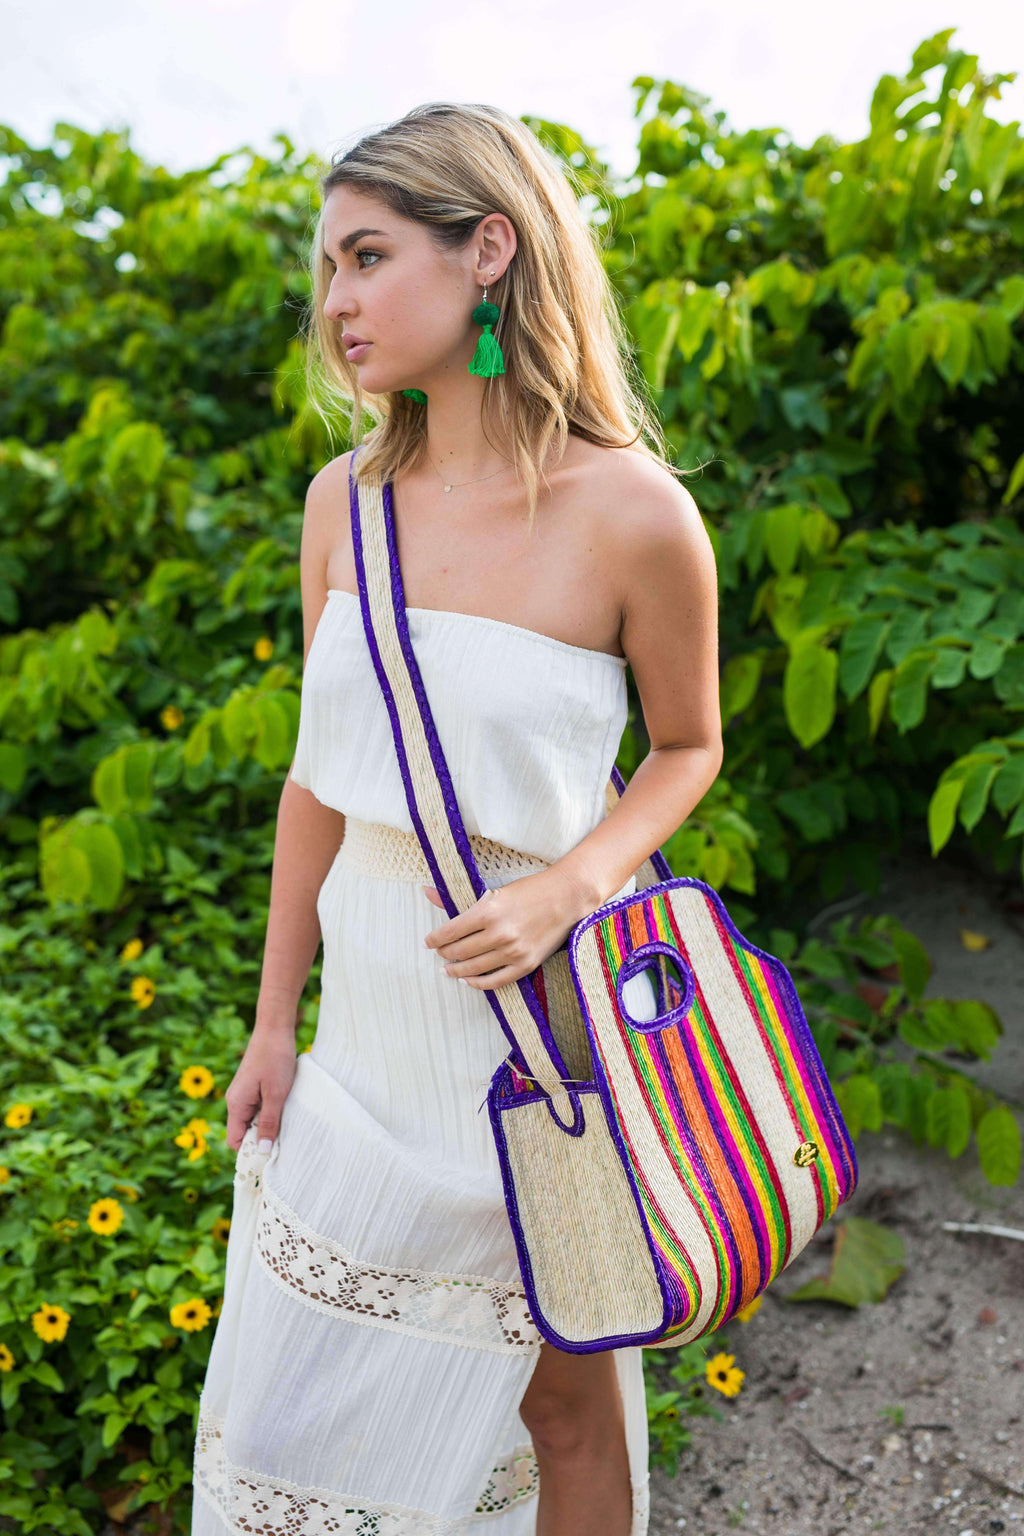 Cancun Straw Crossbody in Violet - Josephine Alexander Collective